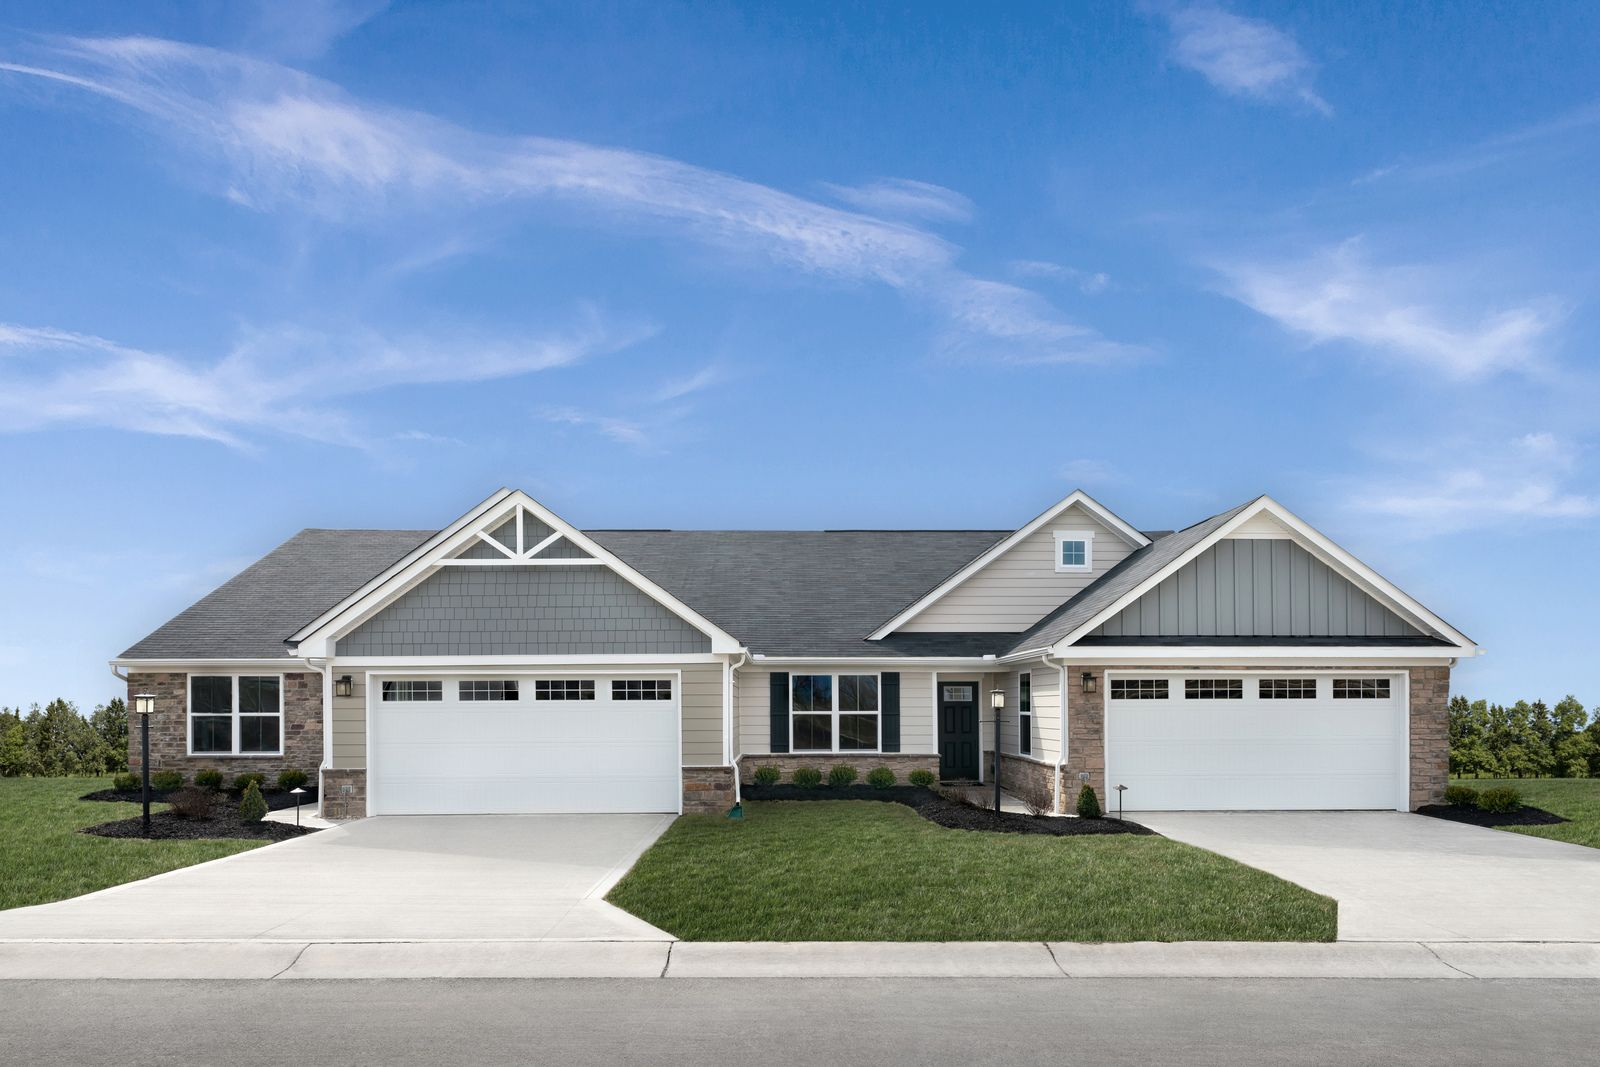 Own an affordable ranch home at Briar Creek Villas:Live a maintenance free lifestyle with included lawn care and snow removal in an active community in charming Whiteland! Starting from the low $200s.Click hereto learn more!